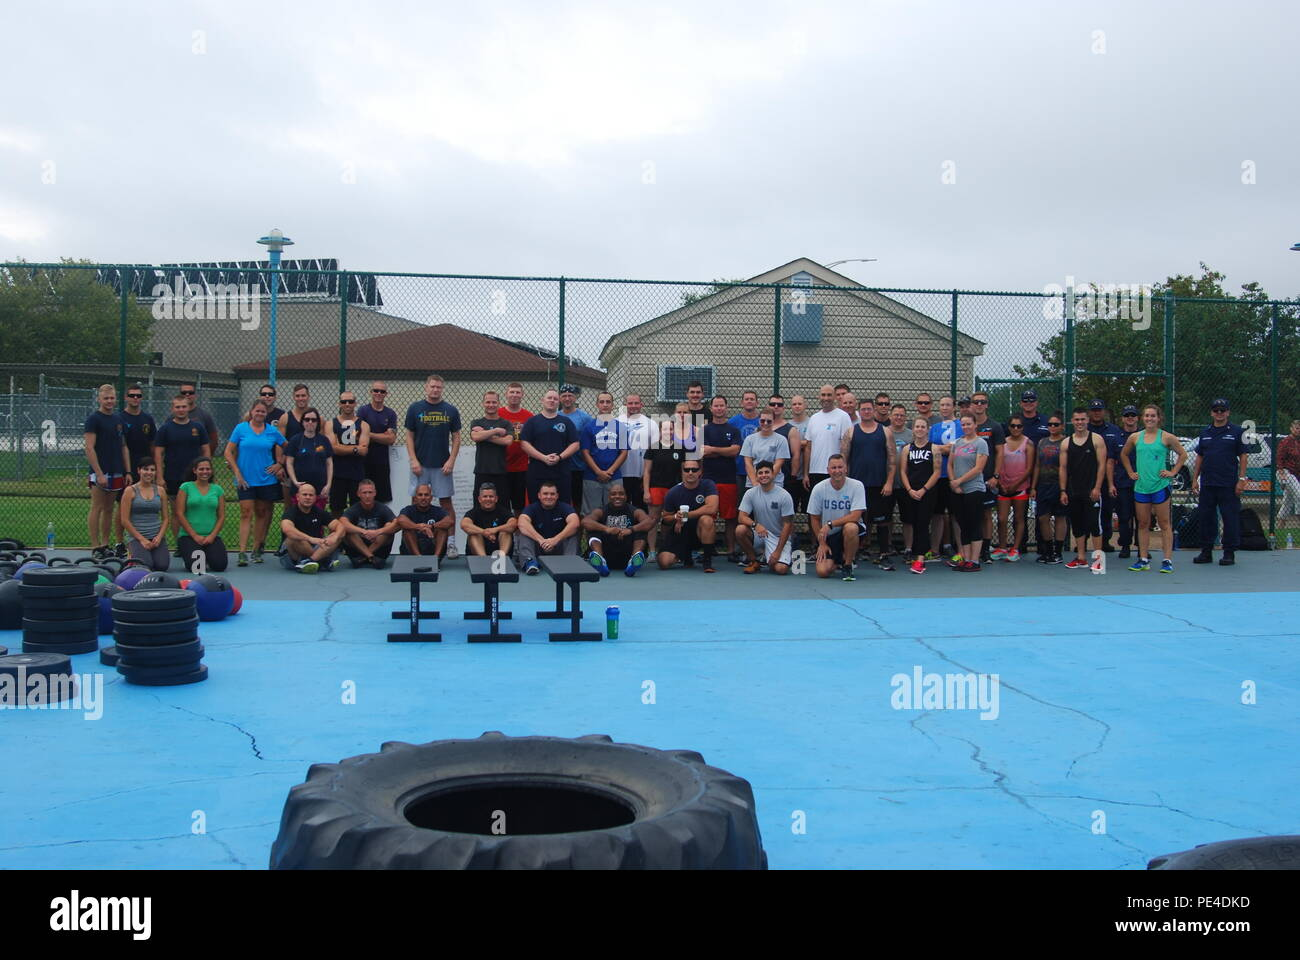 A group of Coast Guardsmen stationed at units in Portsmouth, Va., pose for a photo during Work Out to Speak Out, a group workout organized to raise awareness of suicide prevention, Sept. 10, 2015. Thirteen units across the Coast Guard participated in the event. (U.S. Coast Guard photo courtesy of Senior Chief Petty Officer Maria D'Angelo) - Stock Image